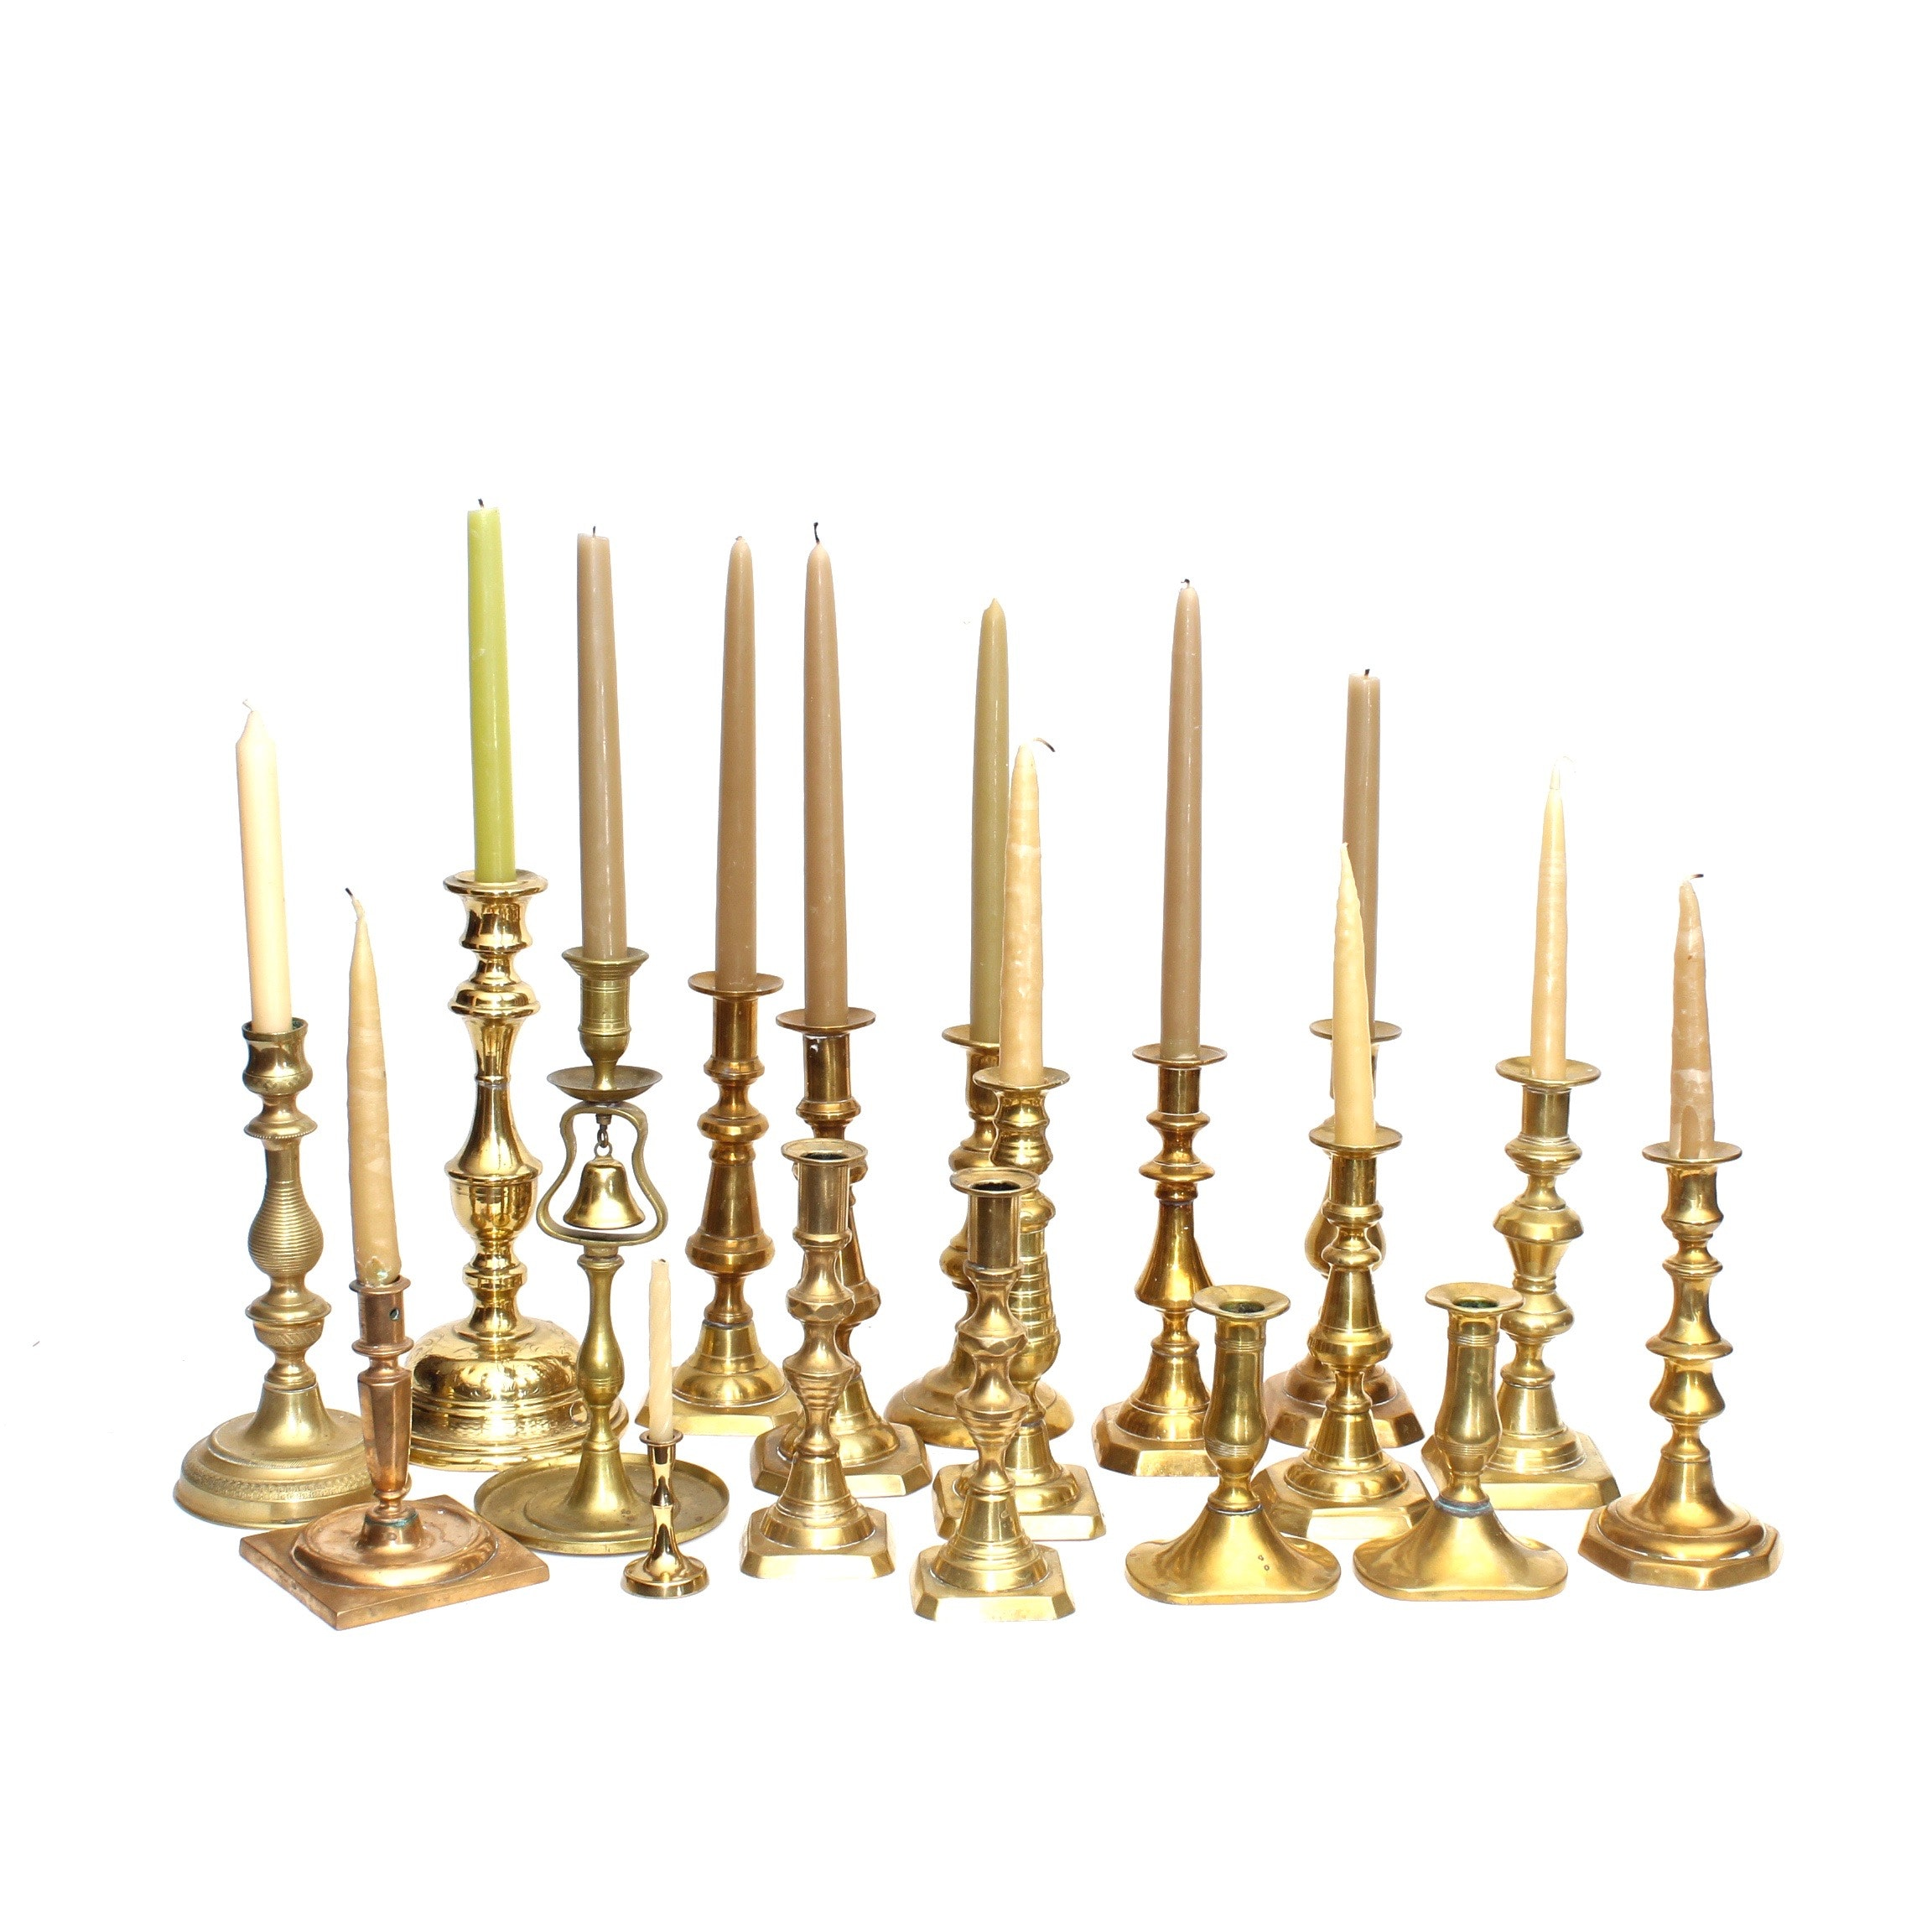 English and Other Brass Push Up and Etched Candlesticks